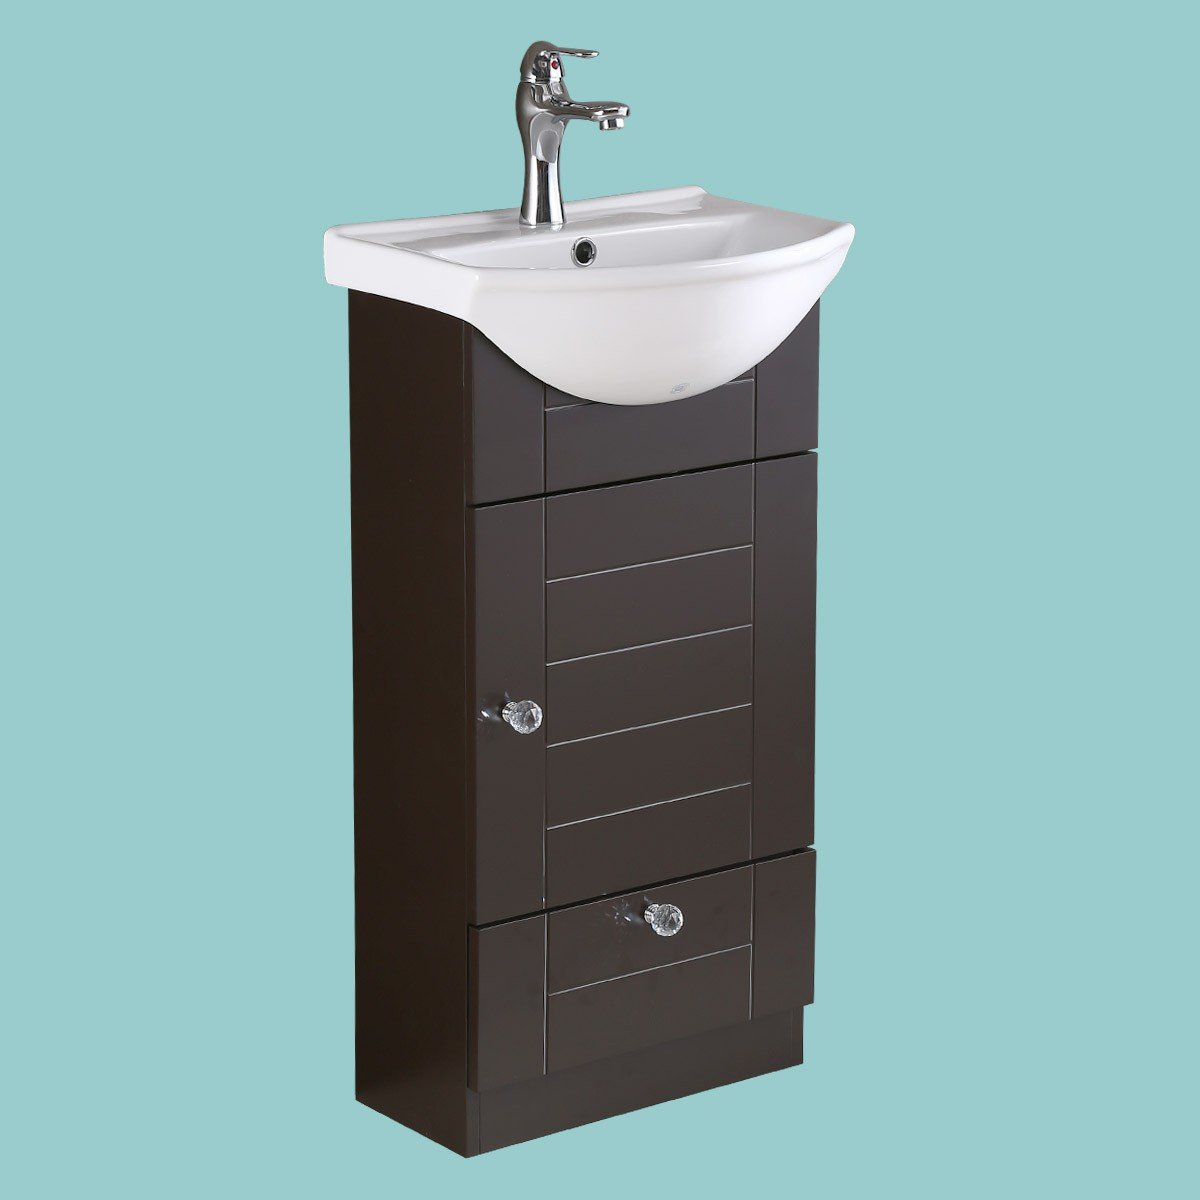 Small Vanity Sink for Bathroom White with Dark Oak Cabinet Faucet ...